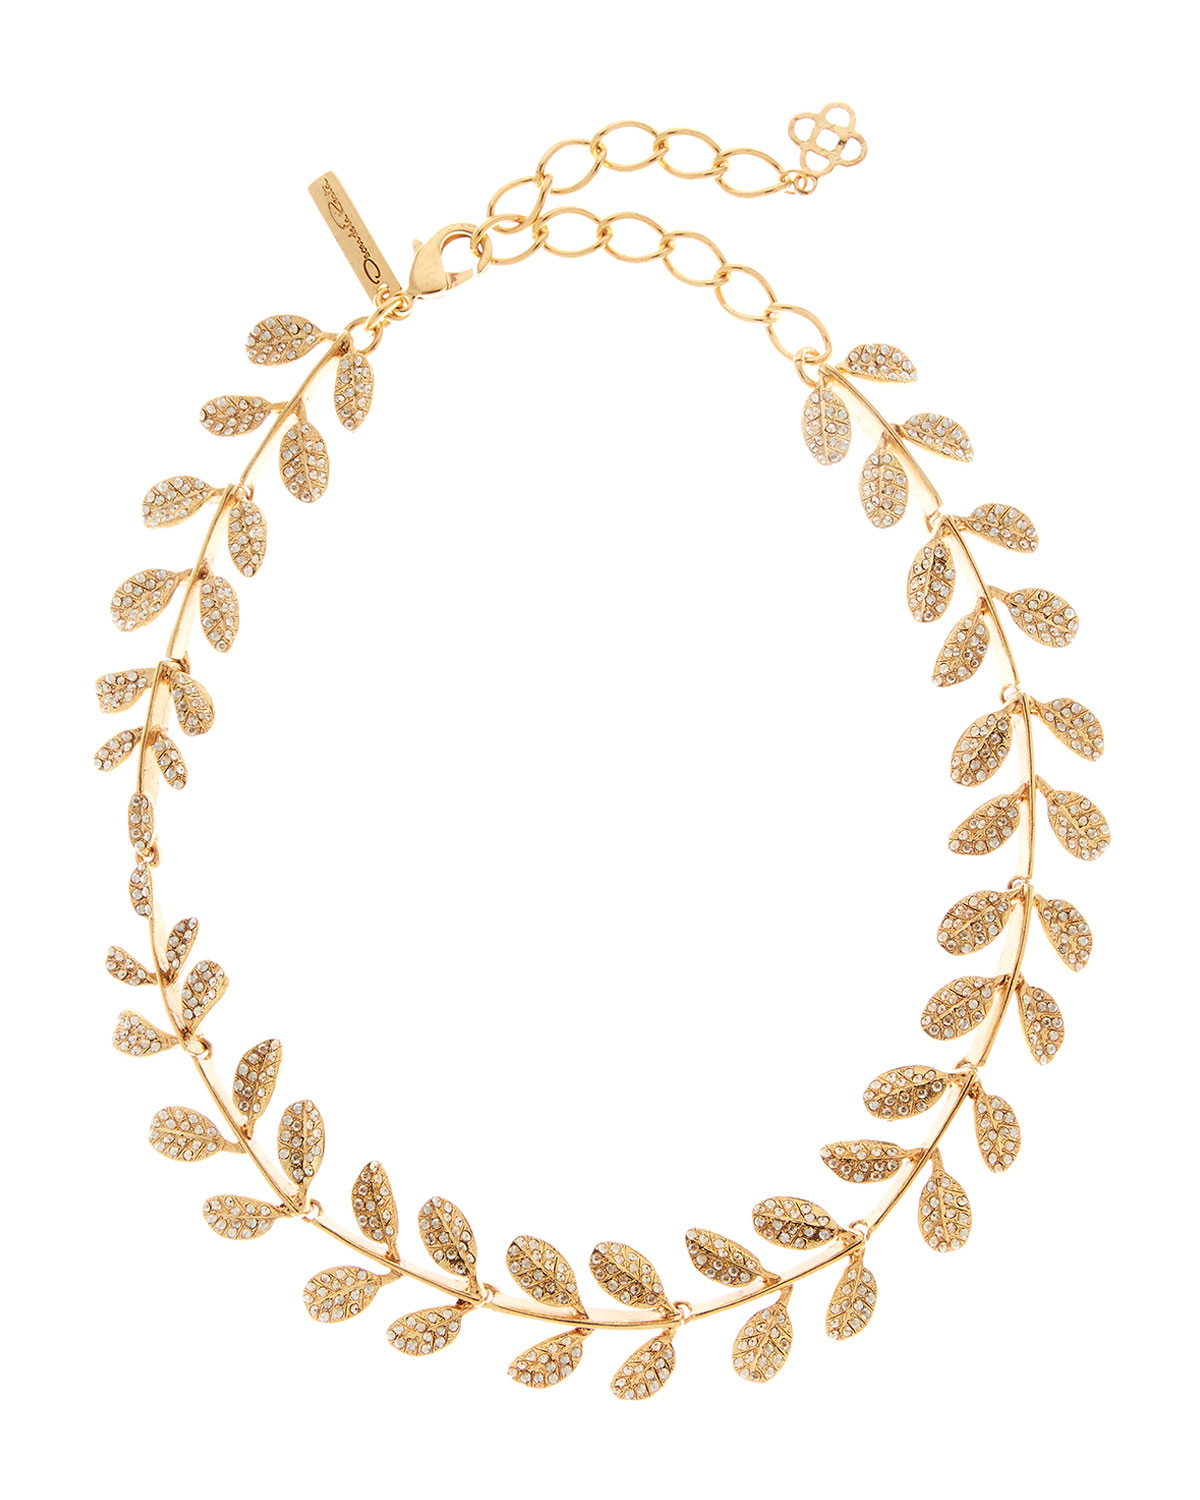 Oscar De La Renta Accessories CRYSTAL PAVE LEAF NECKLACE